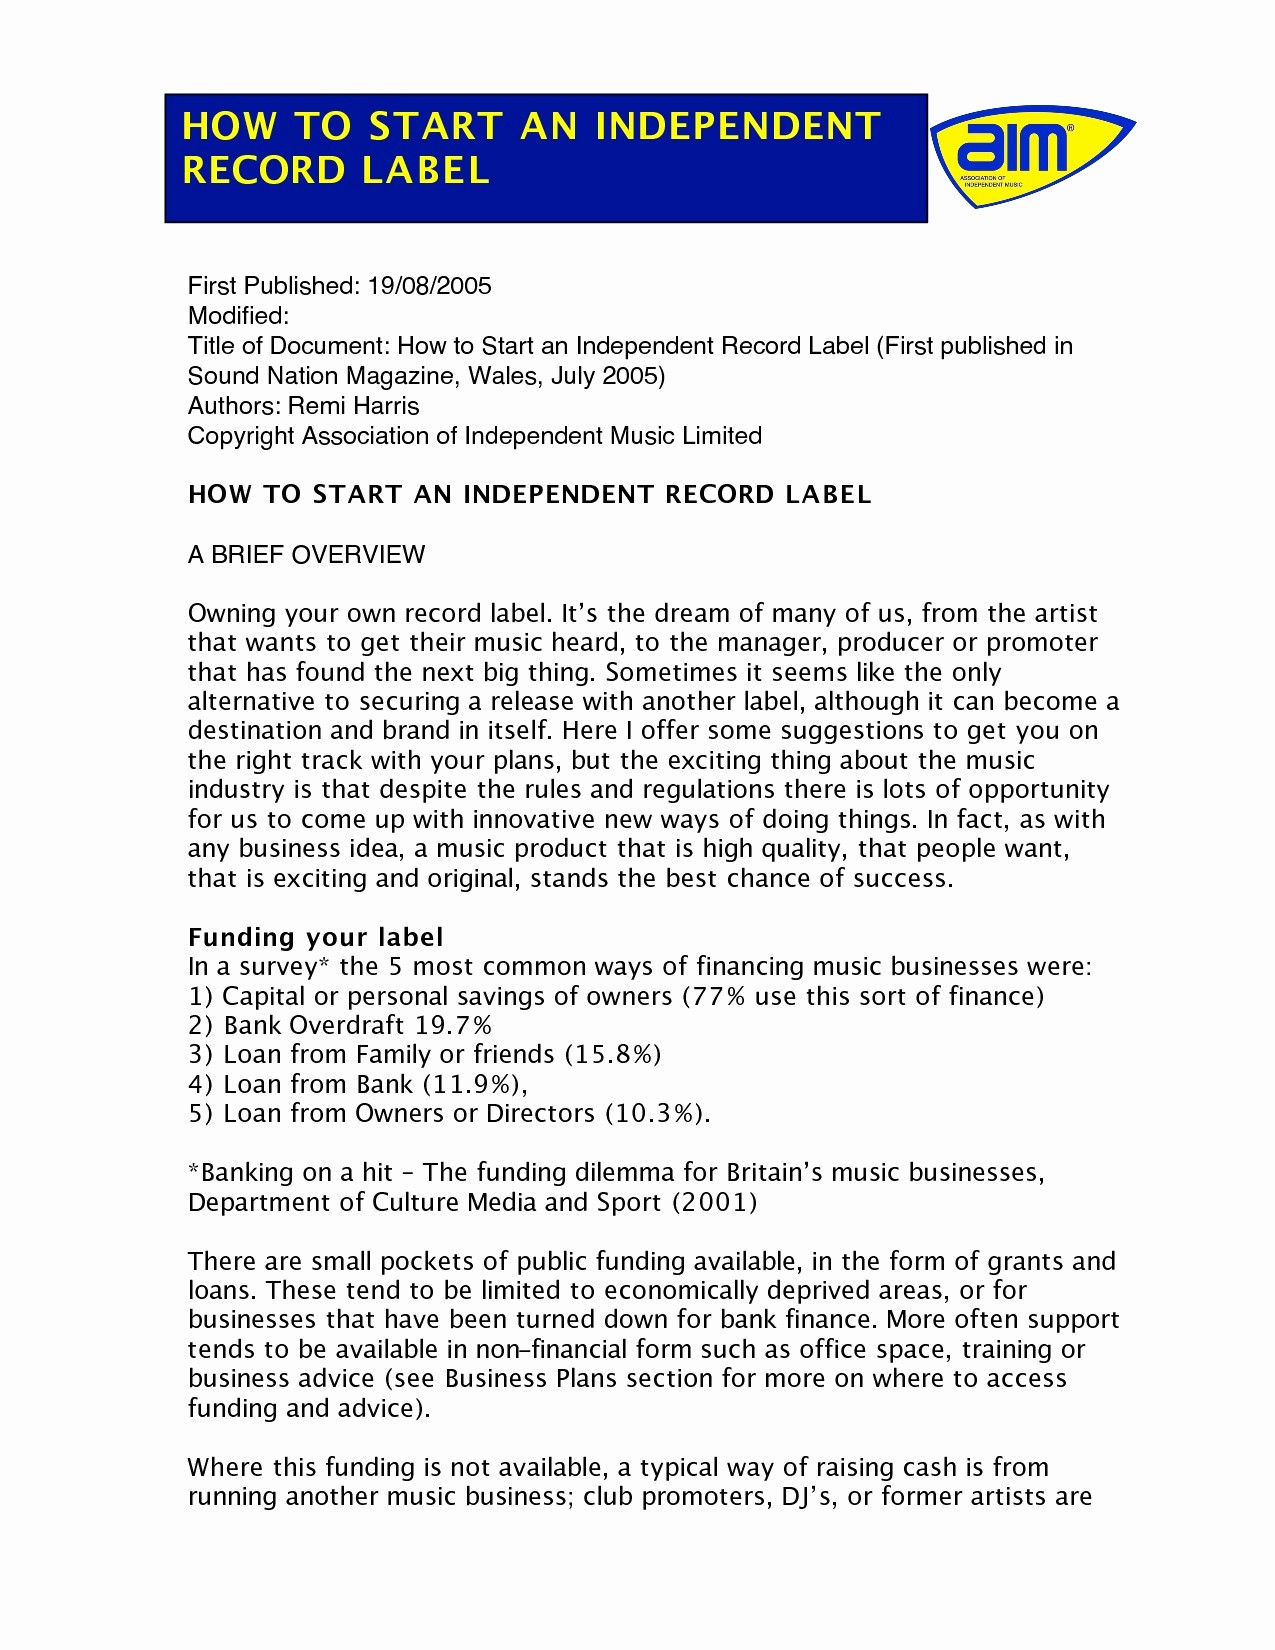 Independent Record Label Business Plan Template New Rate Record Inside Independent Record Label Business Plan Template